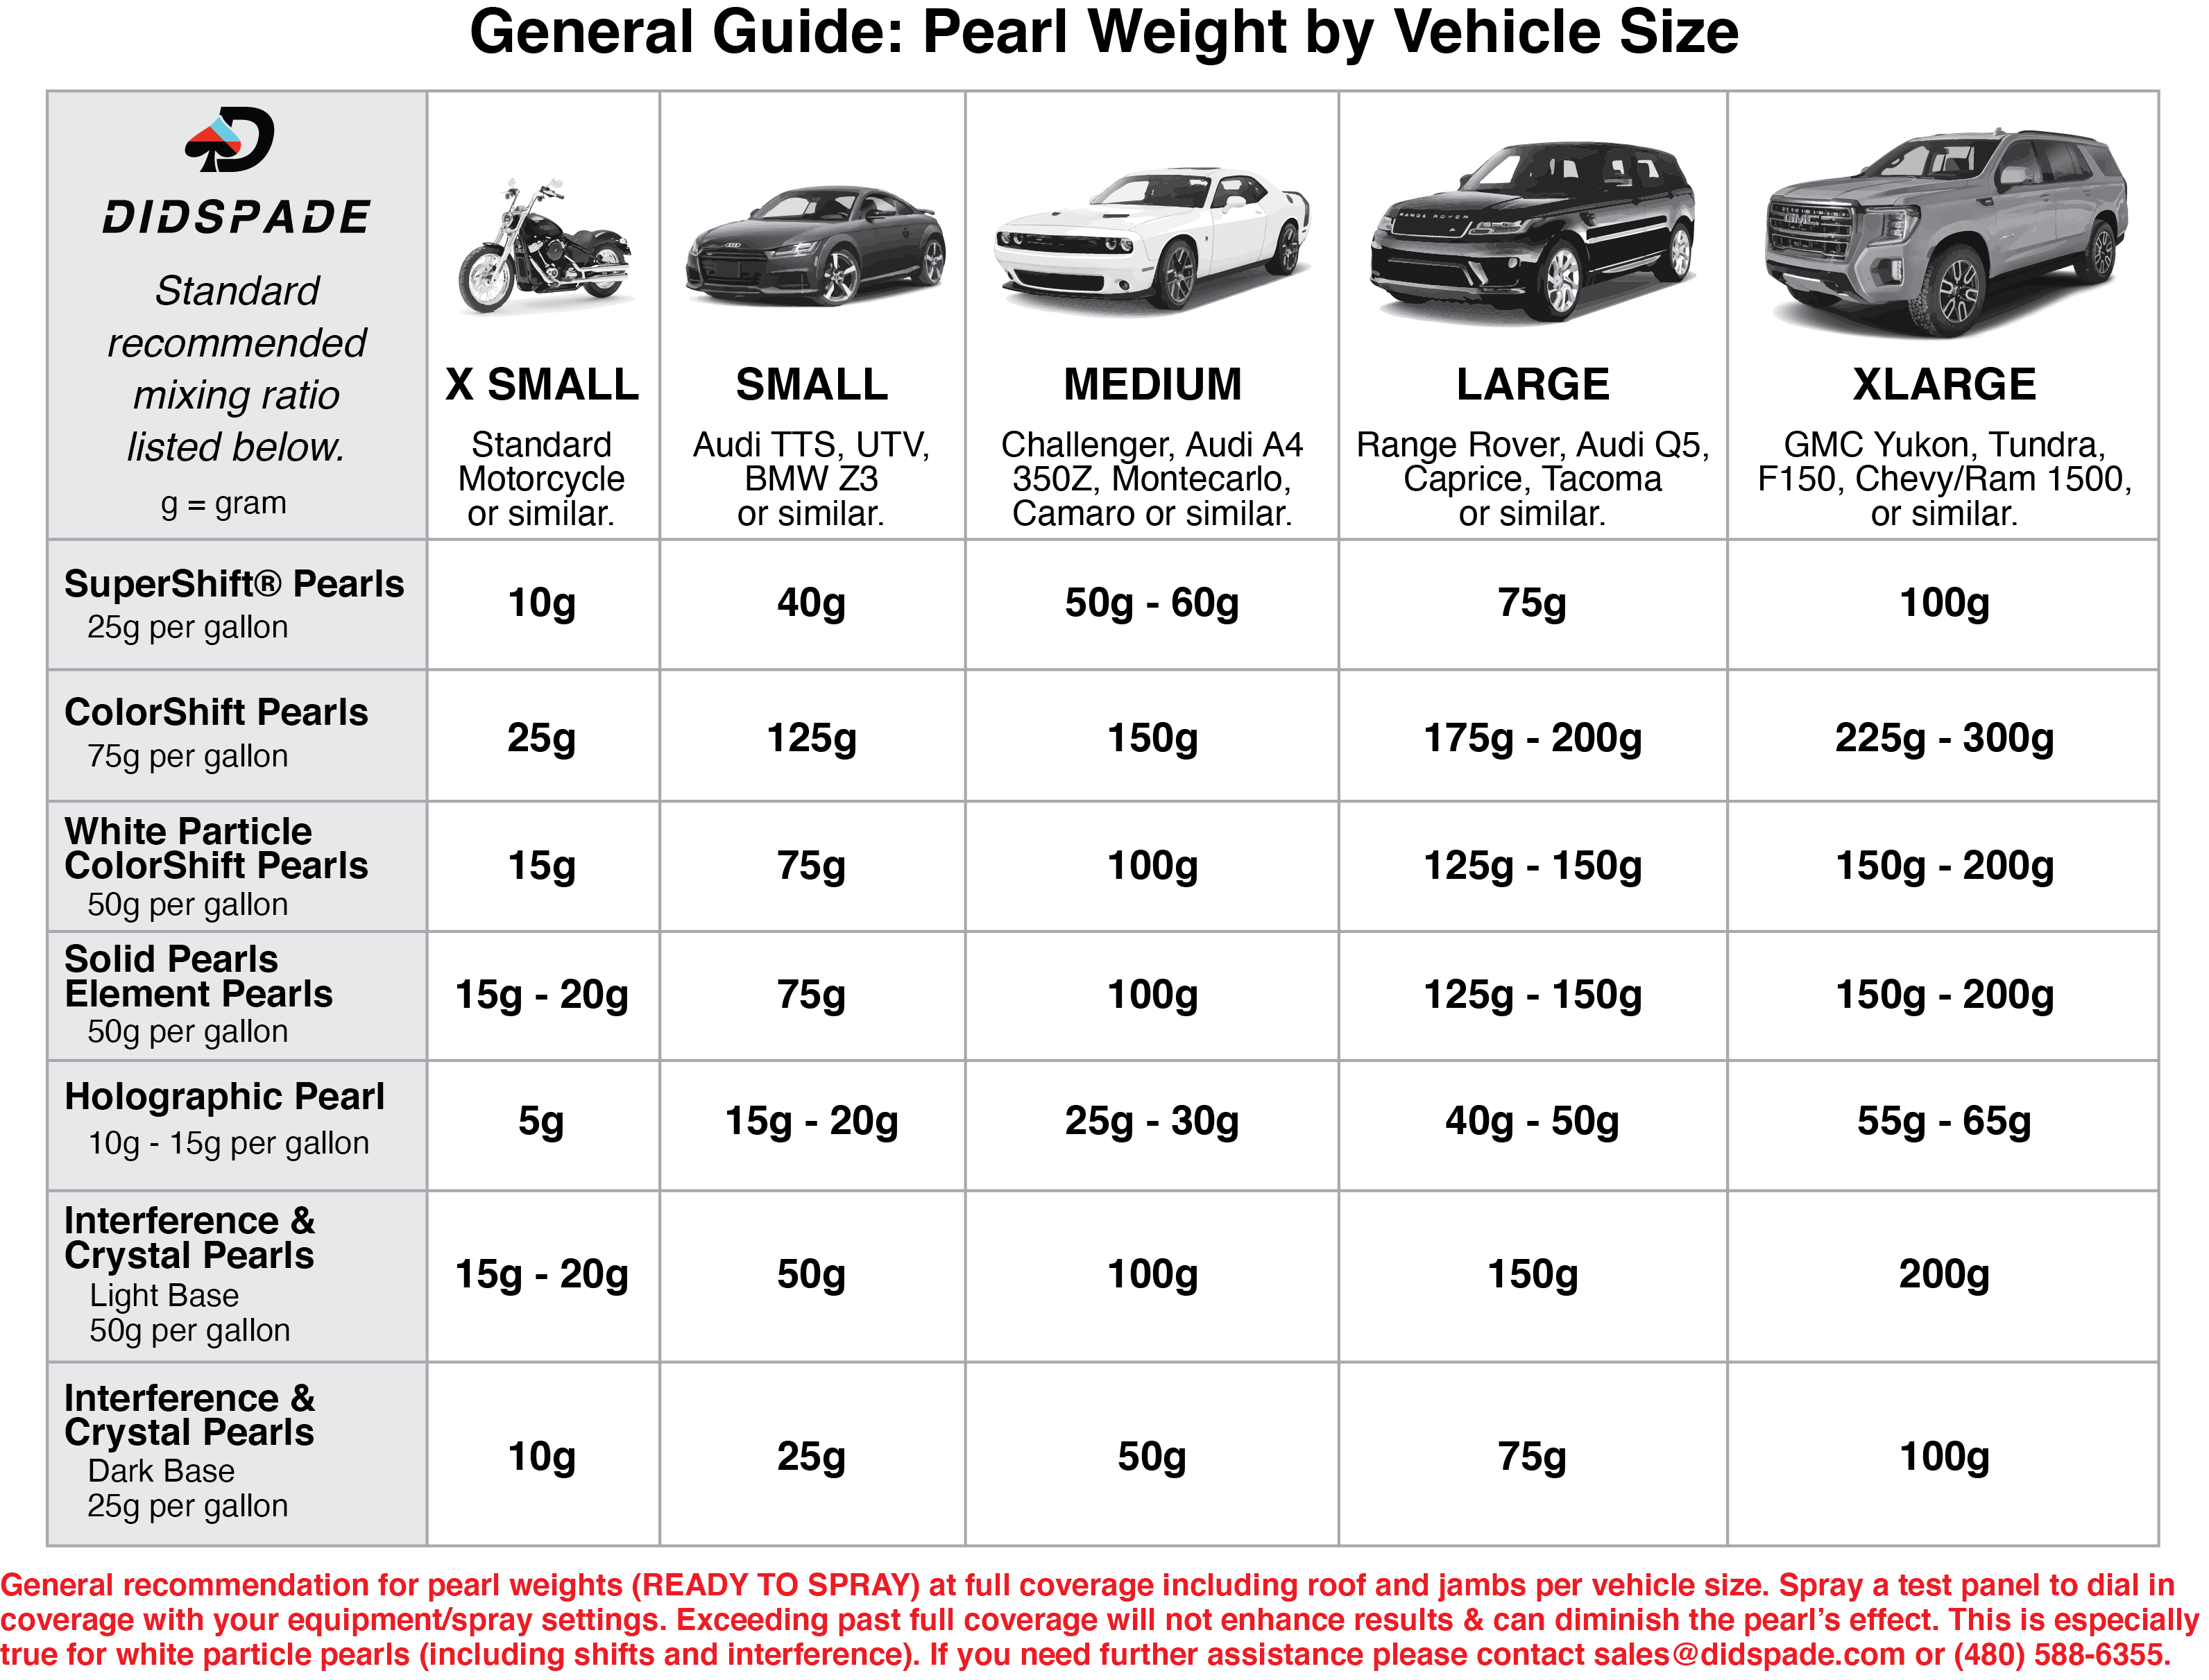 General Guide for Pearl Weights